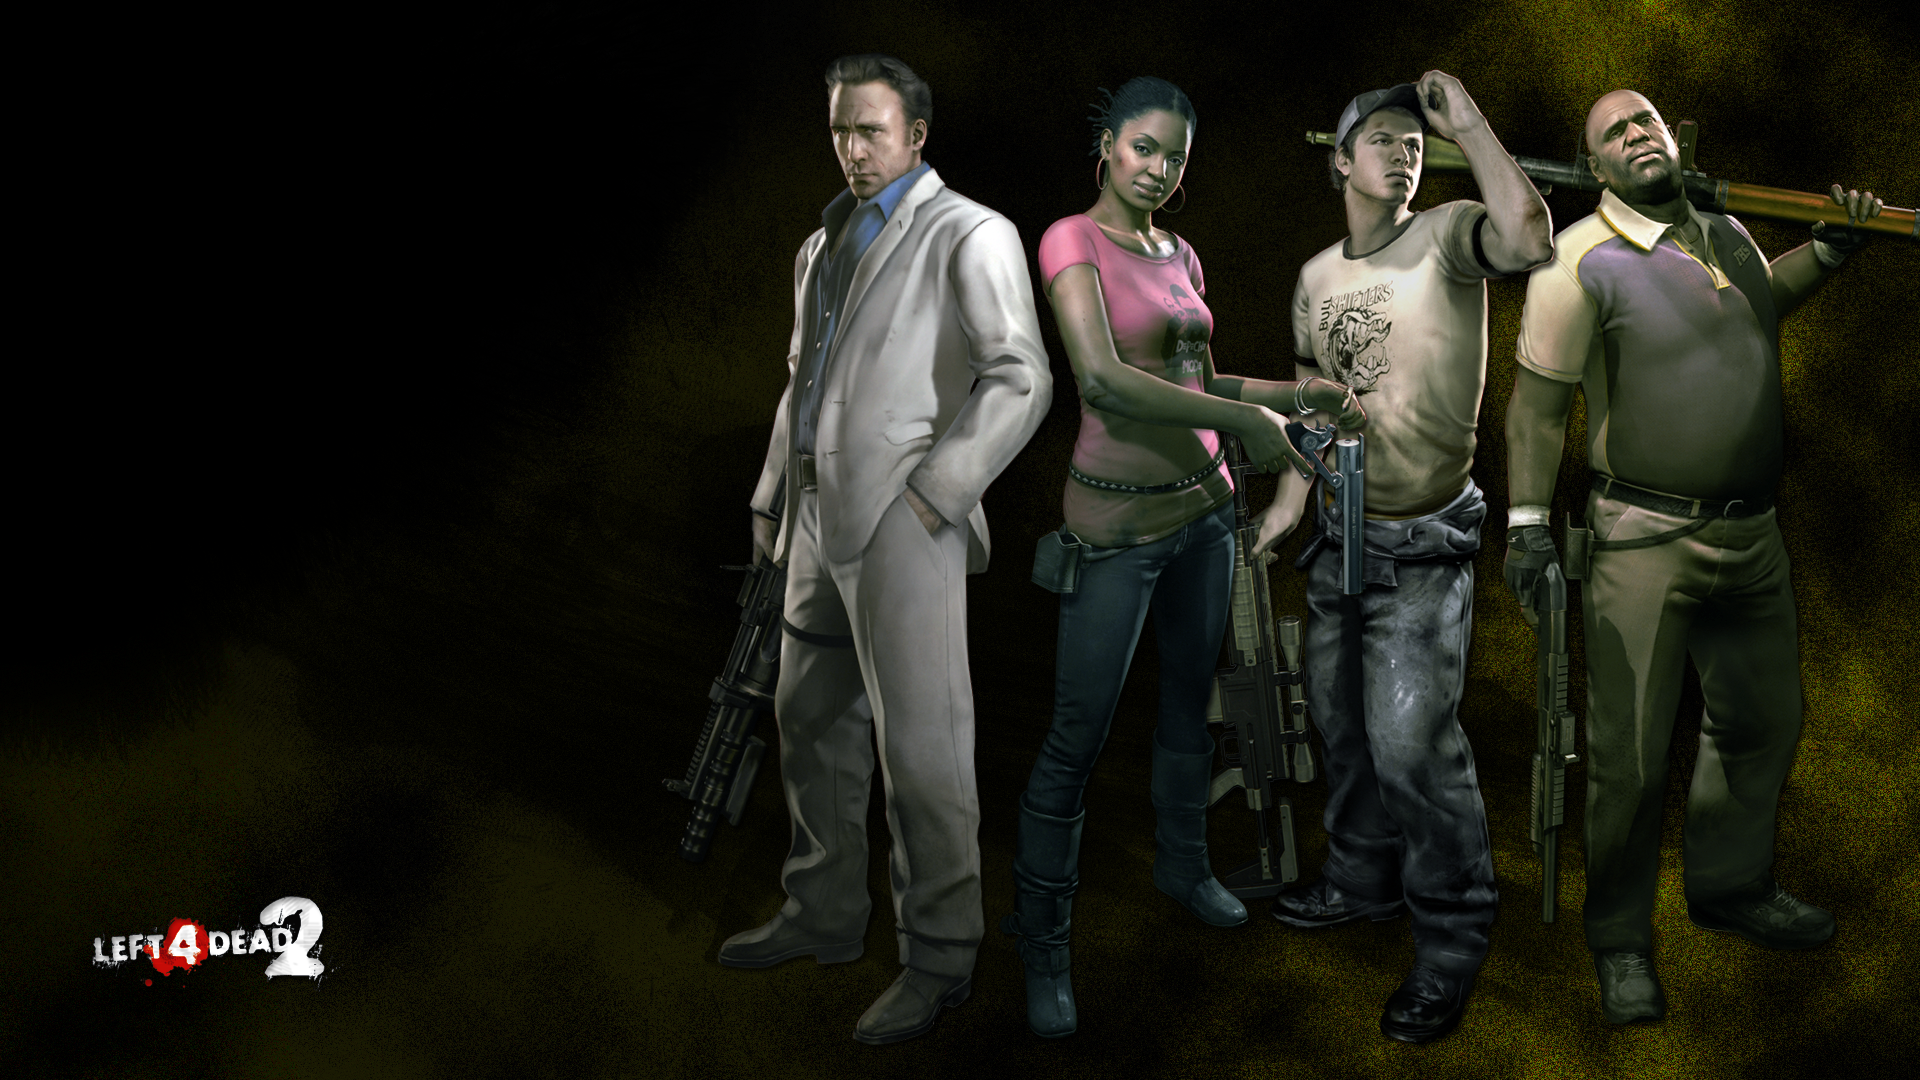 left-4-dead-2-wallpaper-5.jpg